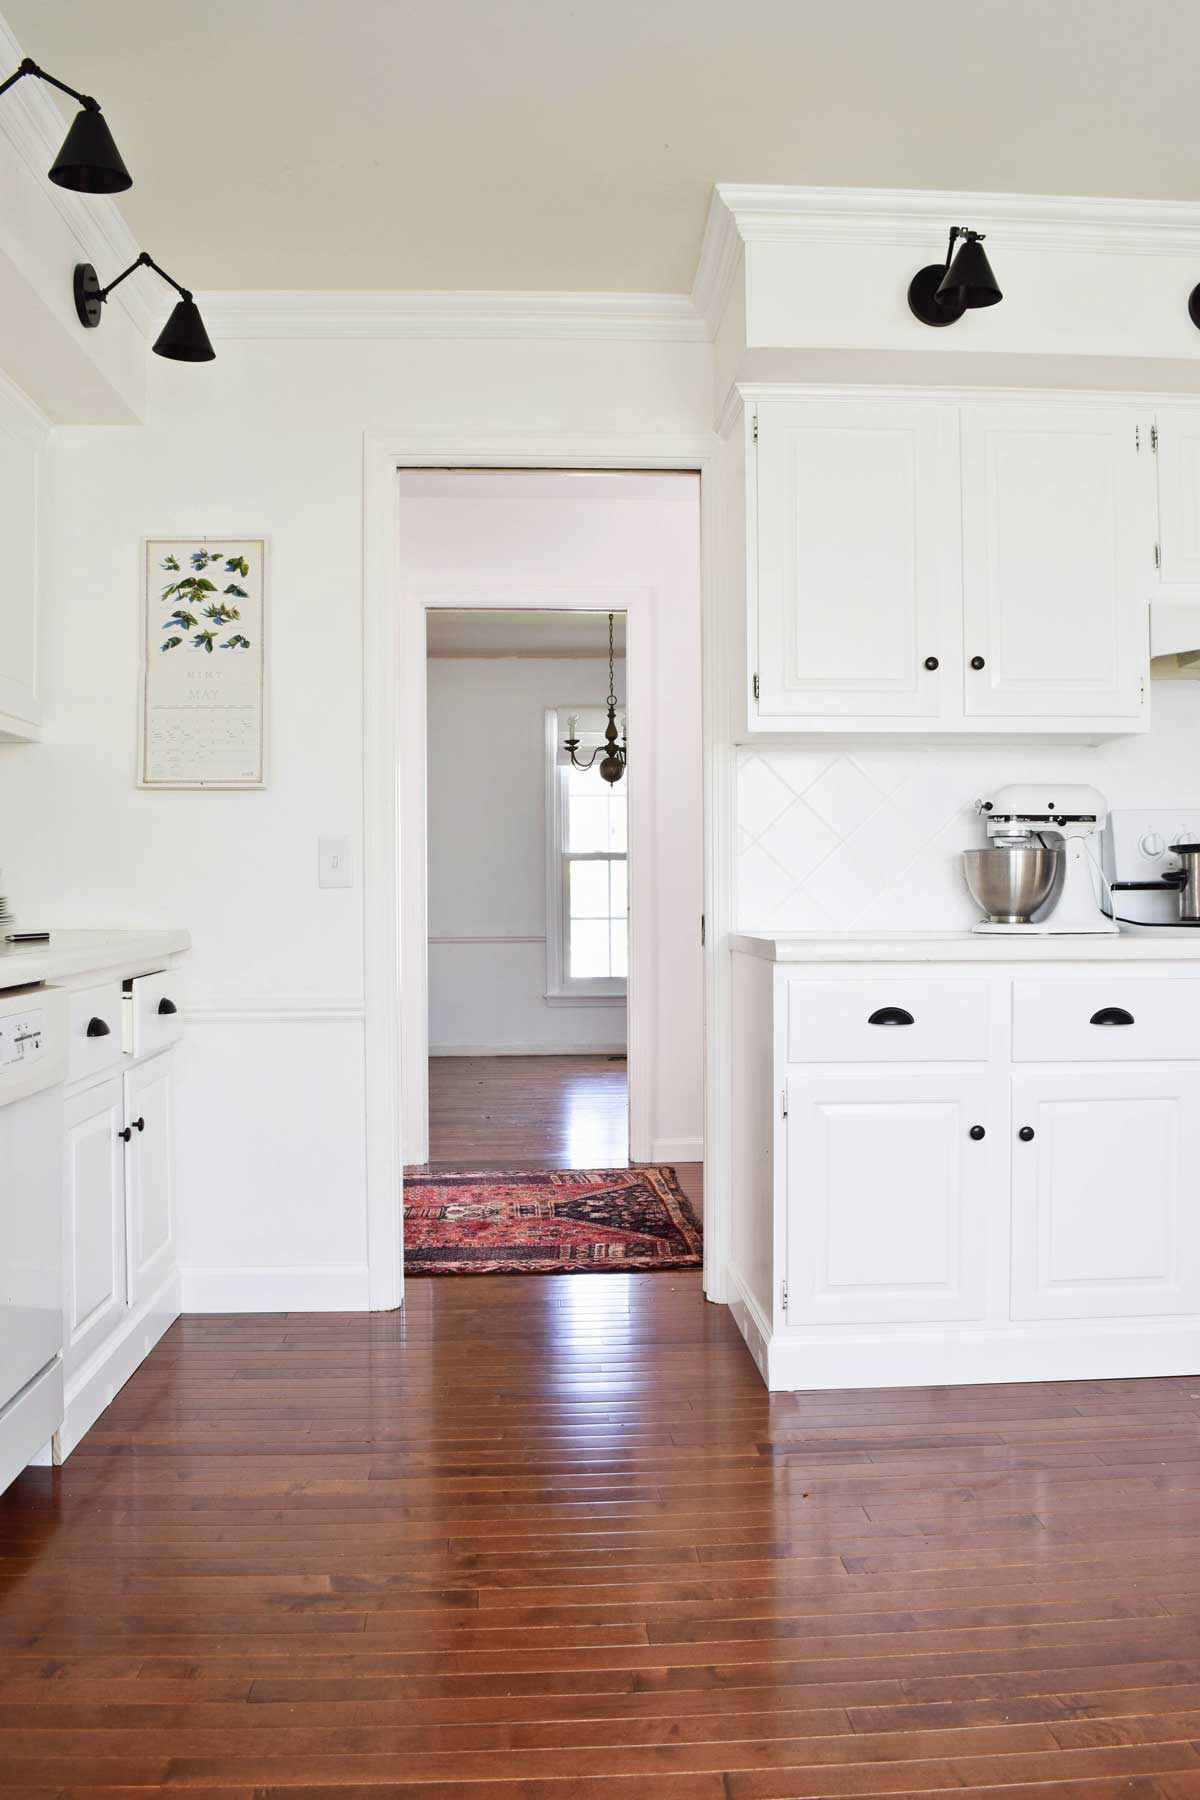 RUGS THAT WORK FOR A MUDROOM